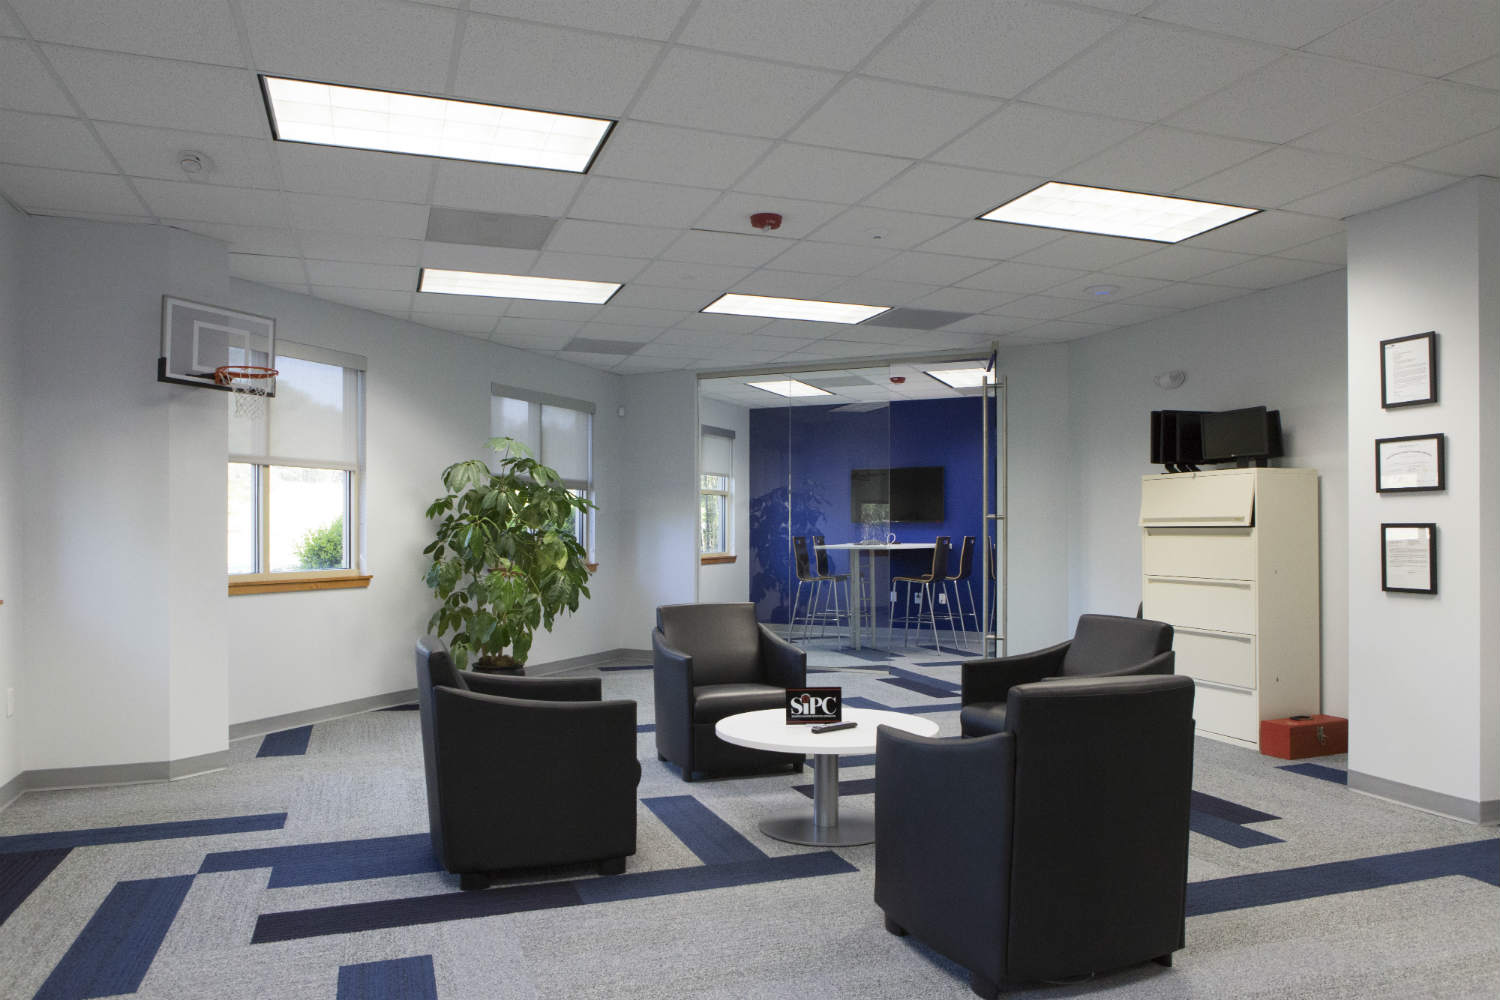 Falcon Square Capital in Raleigh, NC - Internal Room Acoustics and Isolation by WSDG - Main Common Space and Office